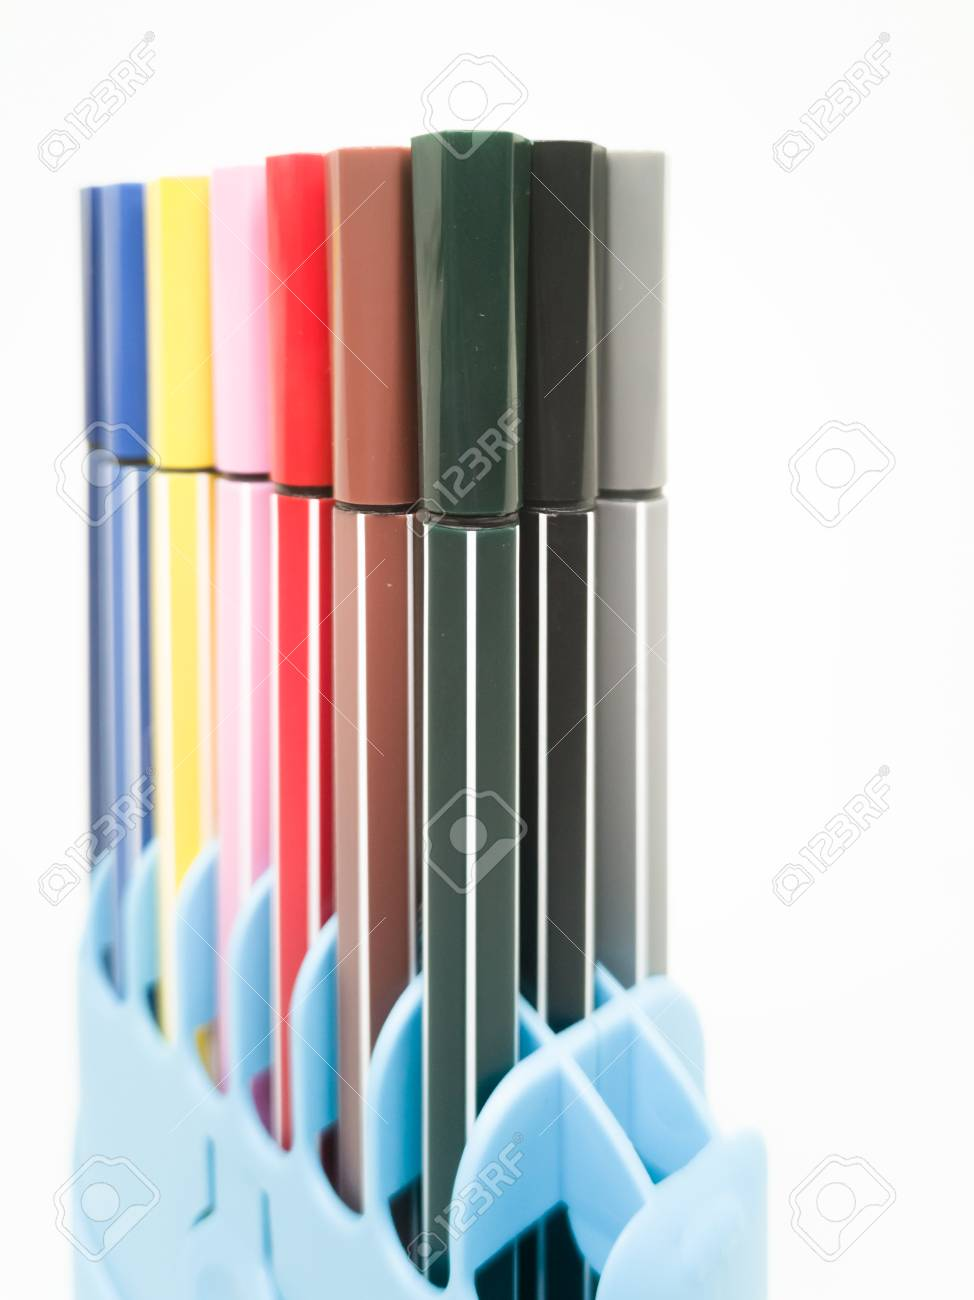 Set of colorful marker paint pen isolated against white background - 106223026